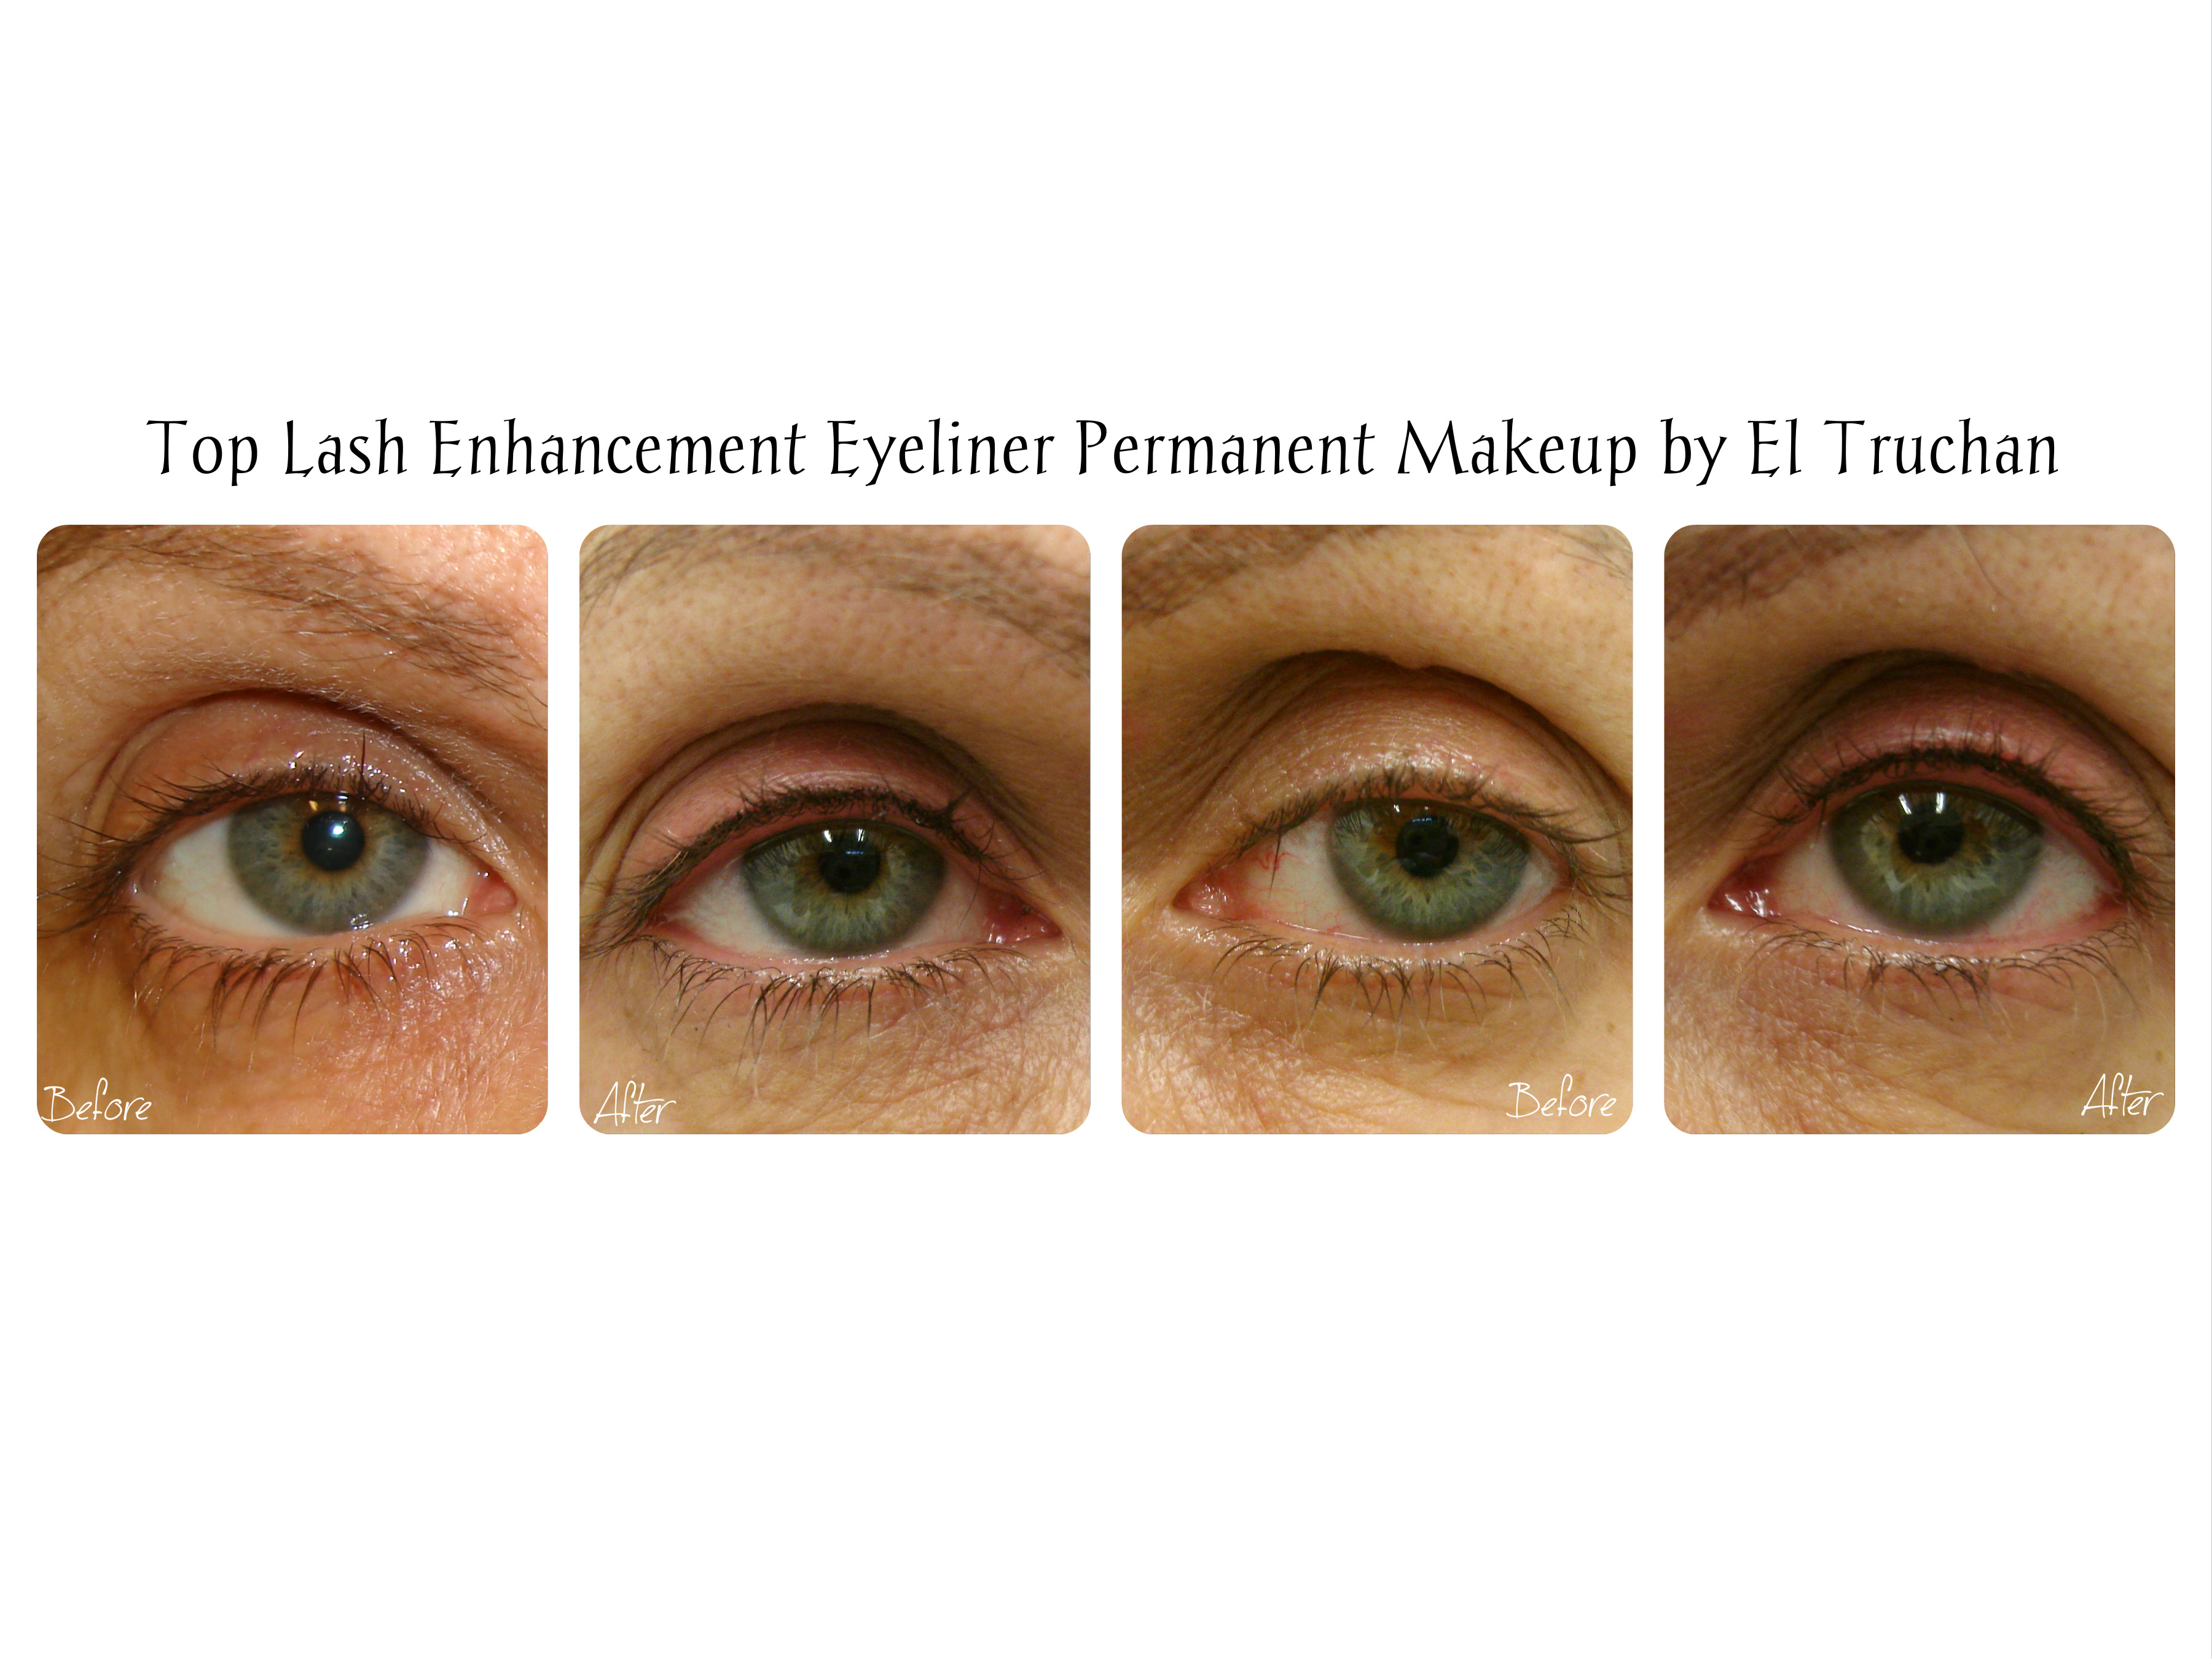 Permanent makeup Eyeliner by El Truchan